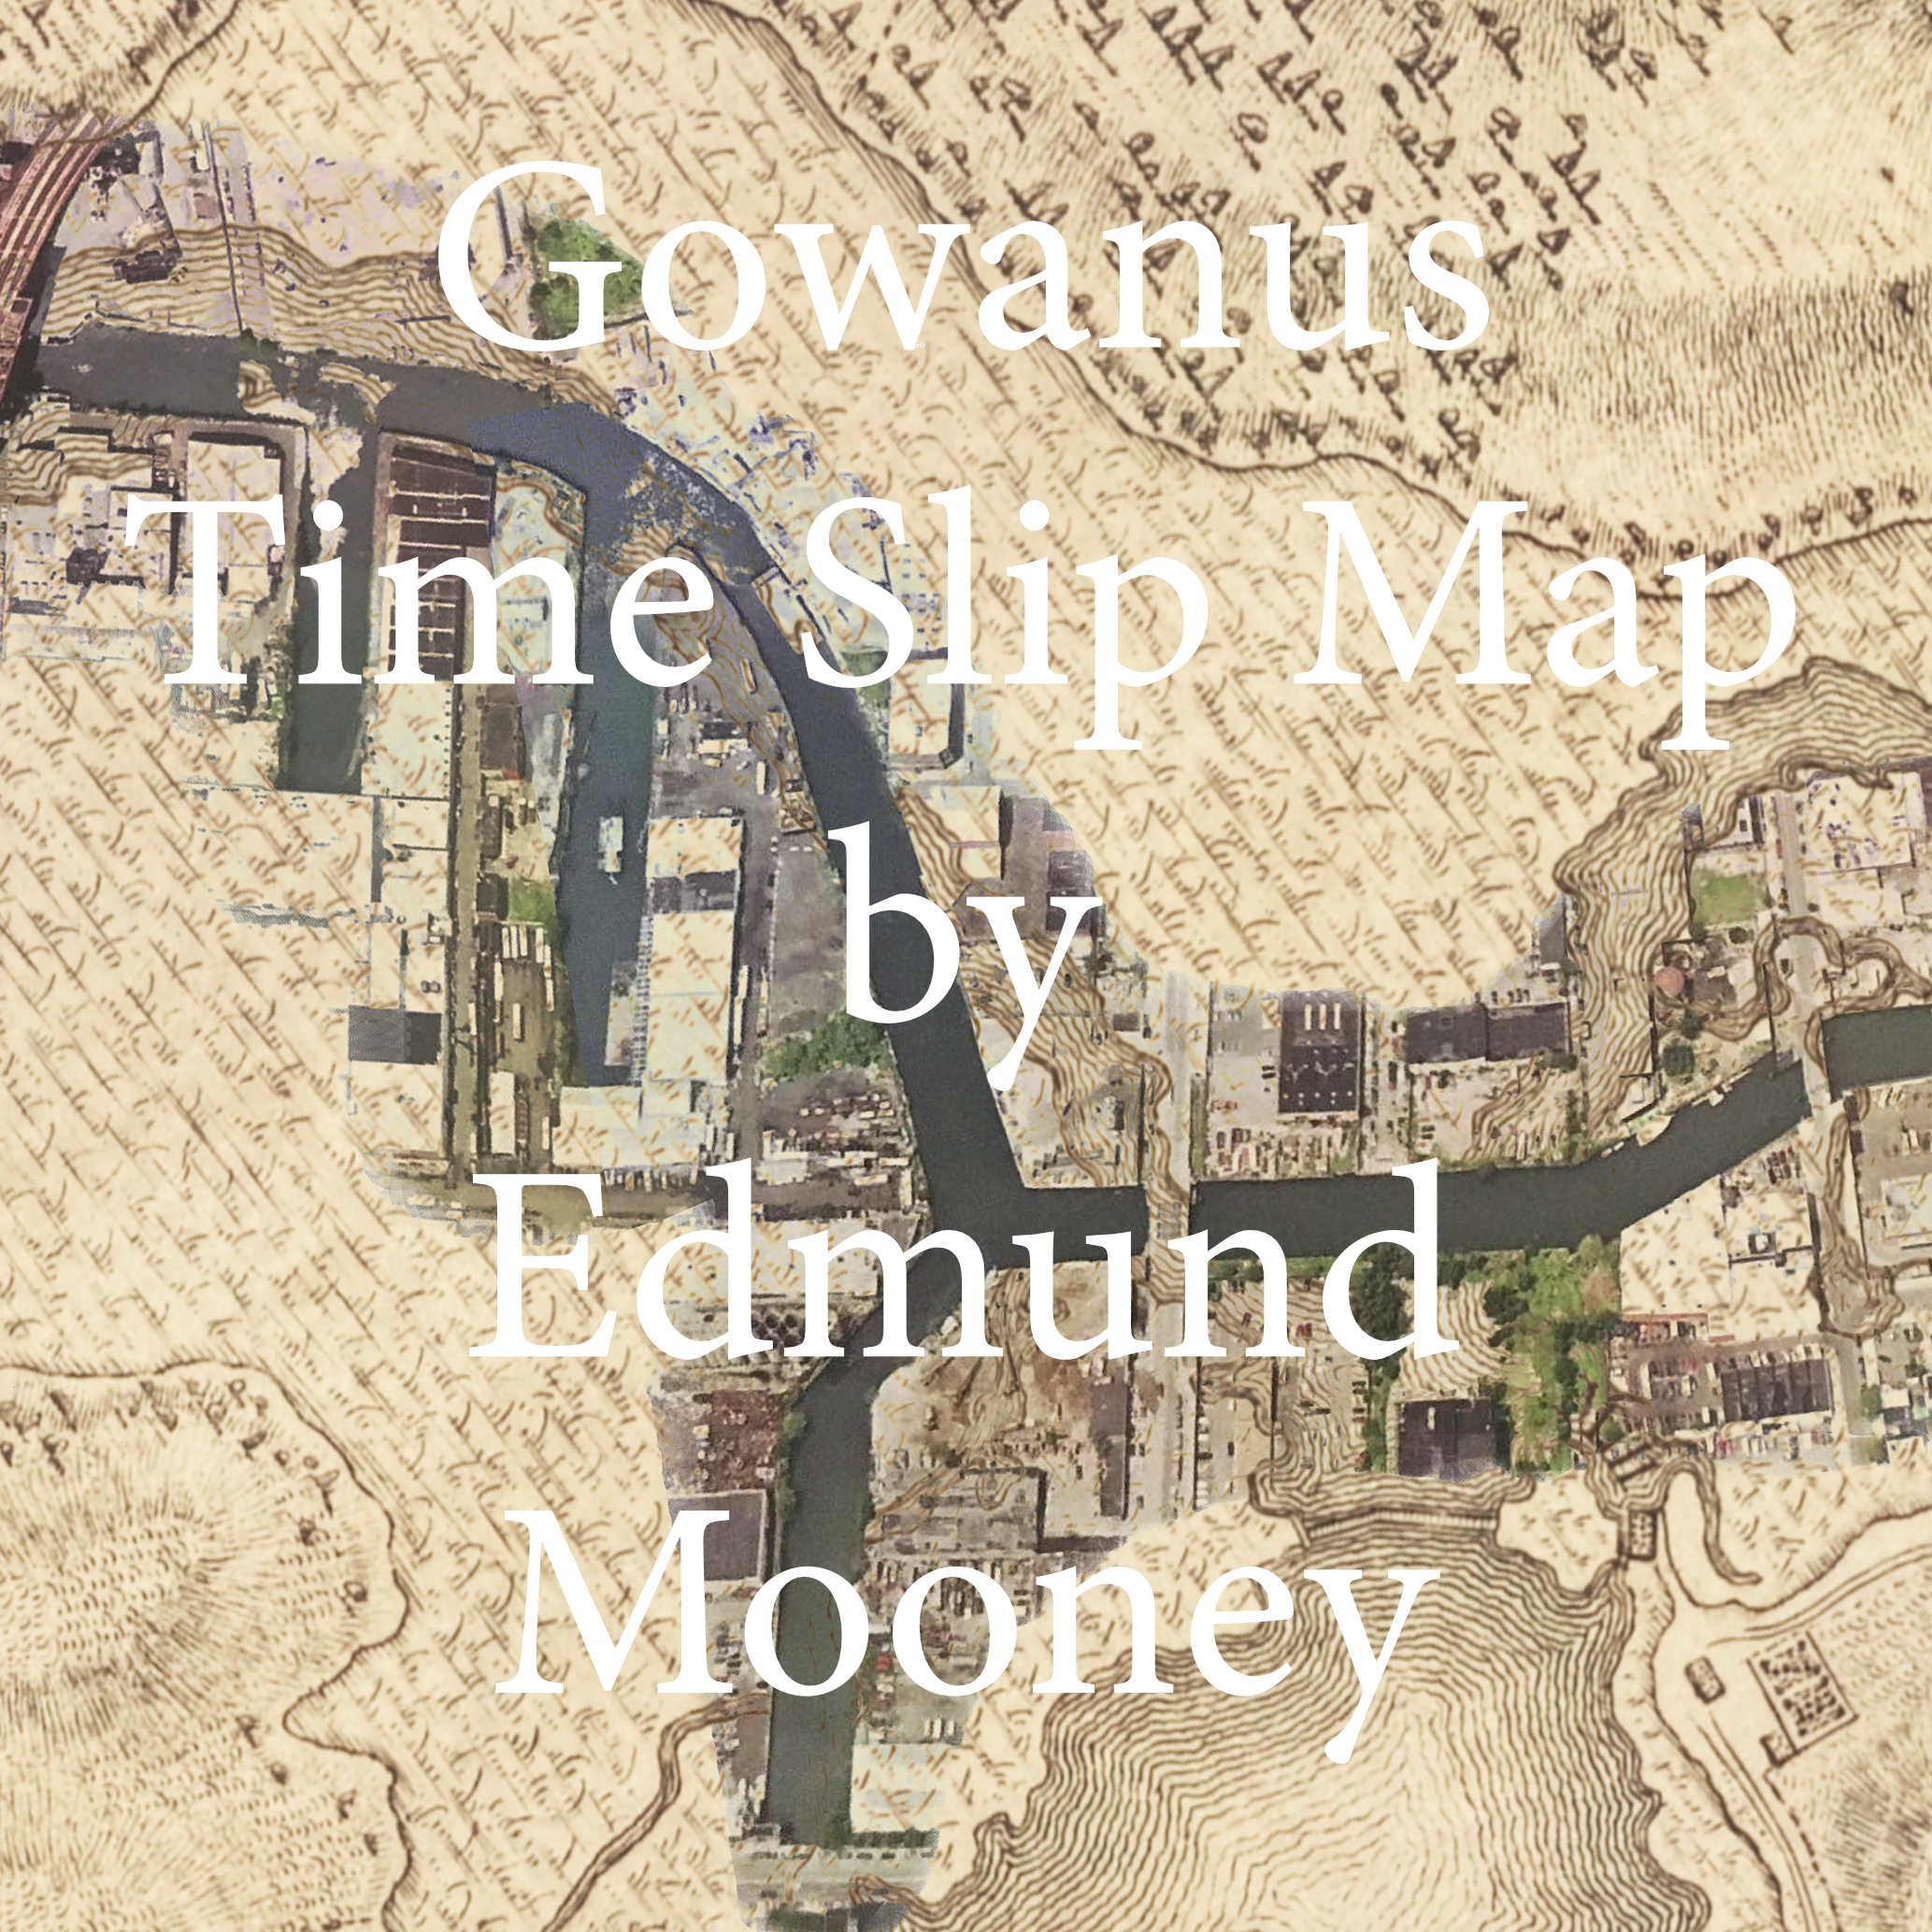 Mooney gowanus time slip map.jpg